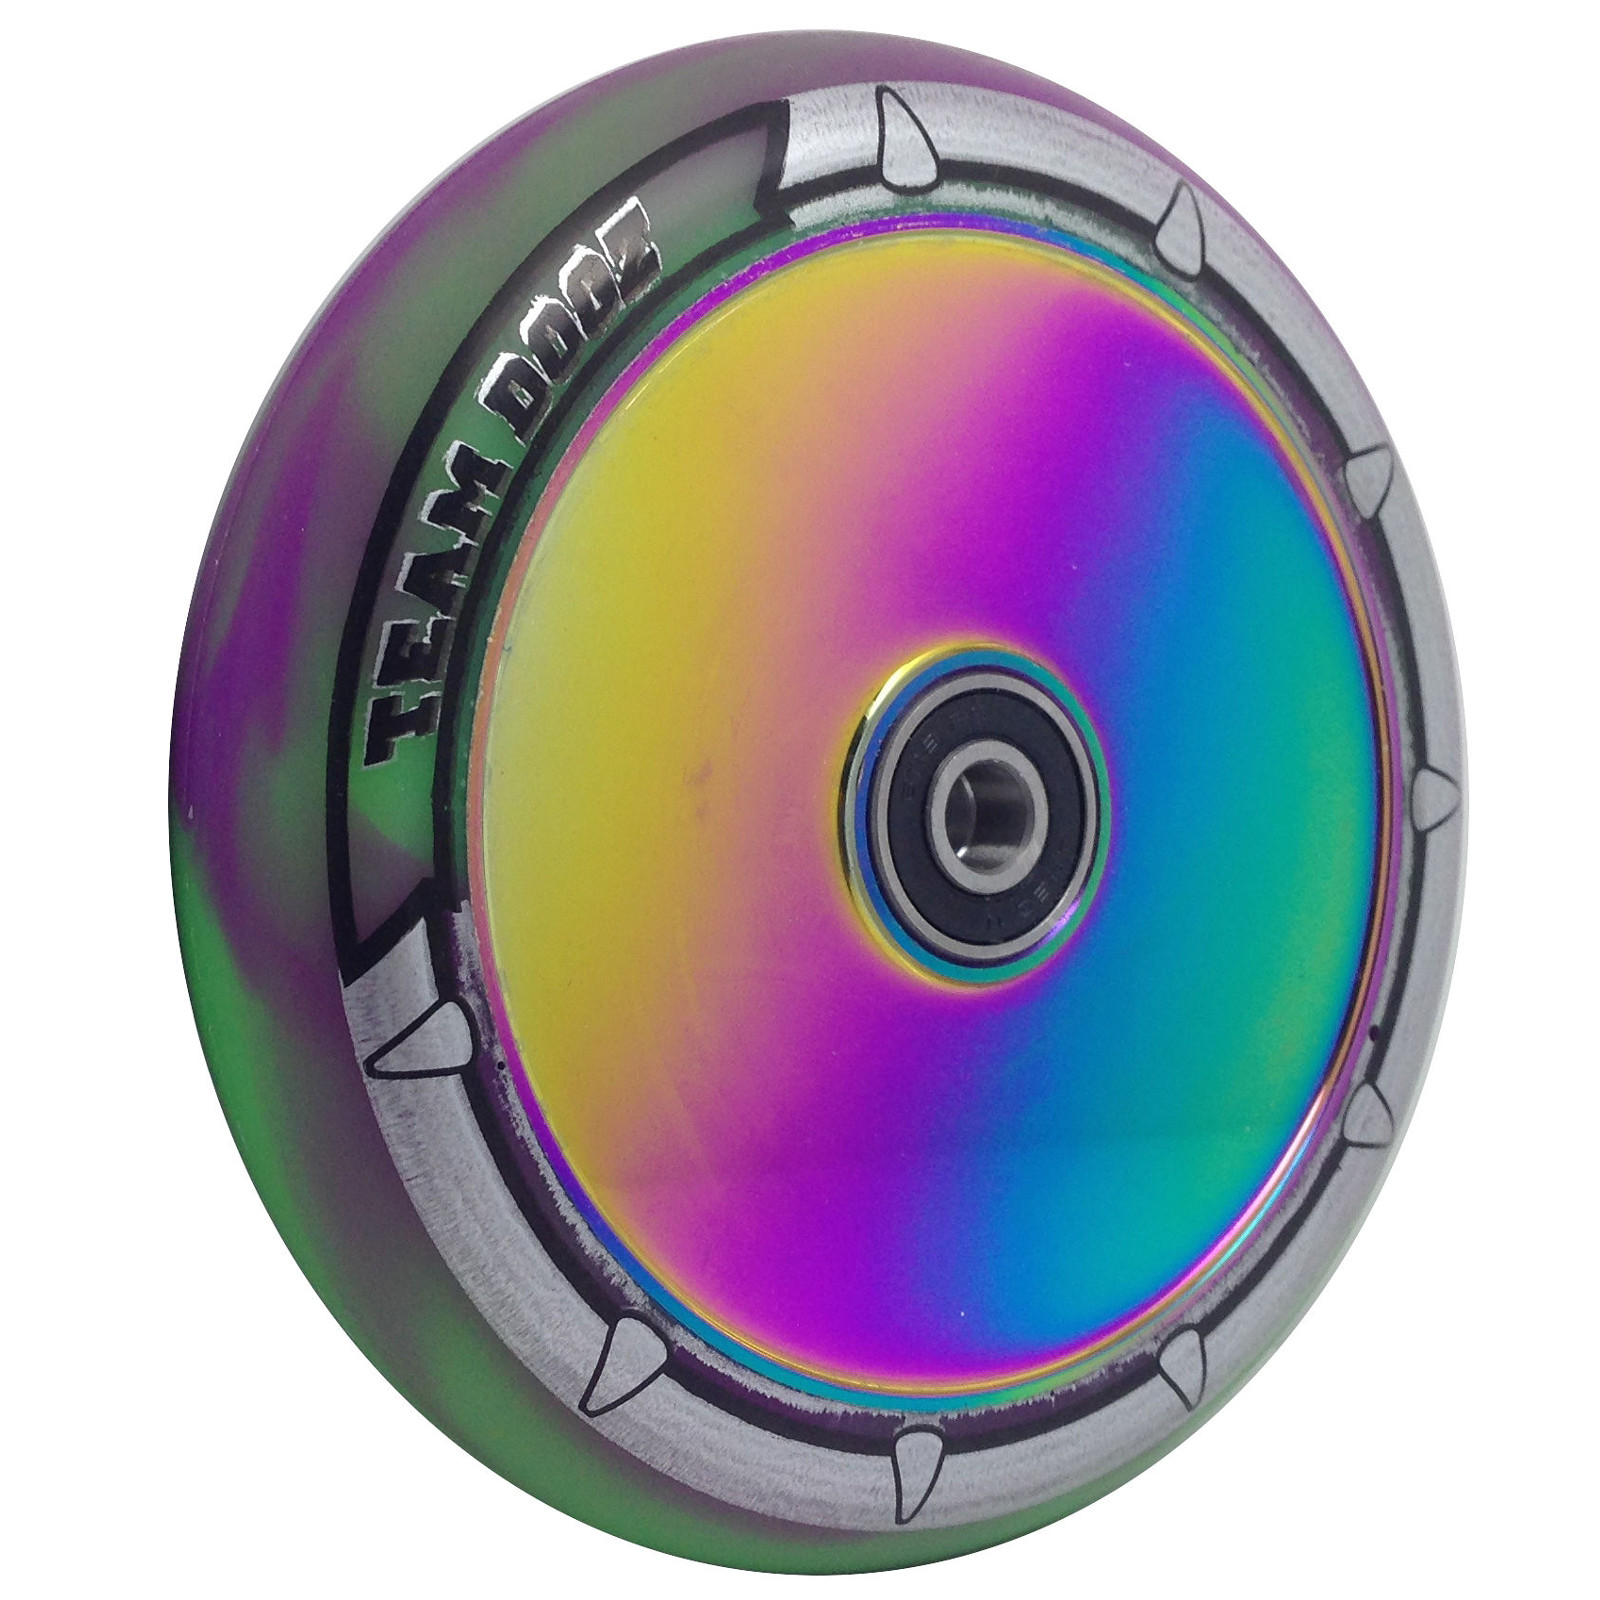 Team Team Team Dogz Hollow Core Scooter Wheel 120Mm 0861f0